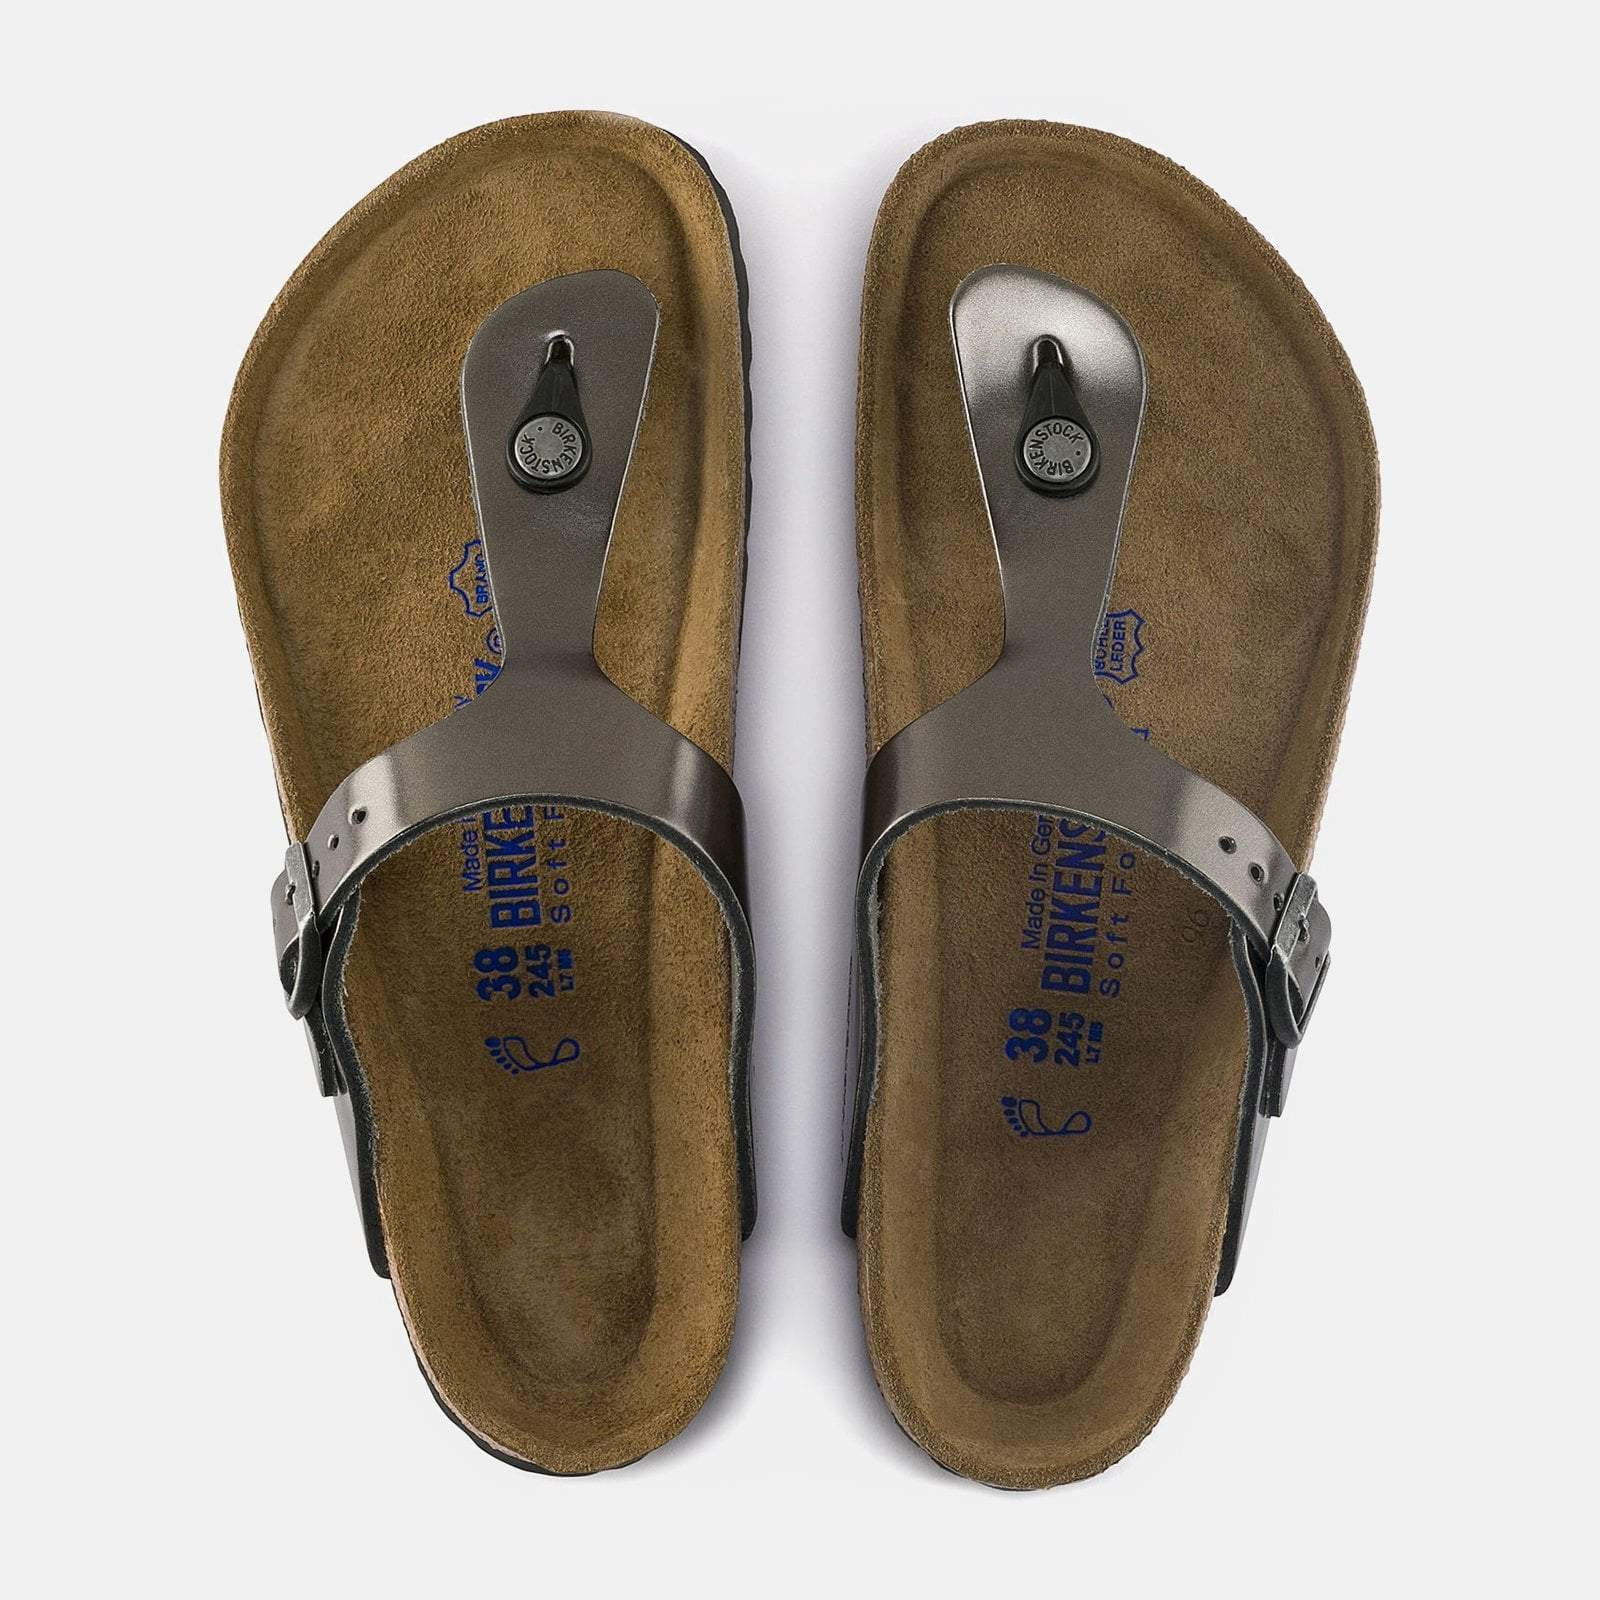 792435e8222e16 Birkenstock Footwear UK 7   EU 40   US 9-9.5   Metallic Anthracite Gizeh.  Birkenstock Footwear UK 7   EU 40   US 9-9.5   Metallic Anthracite Gizeh